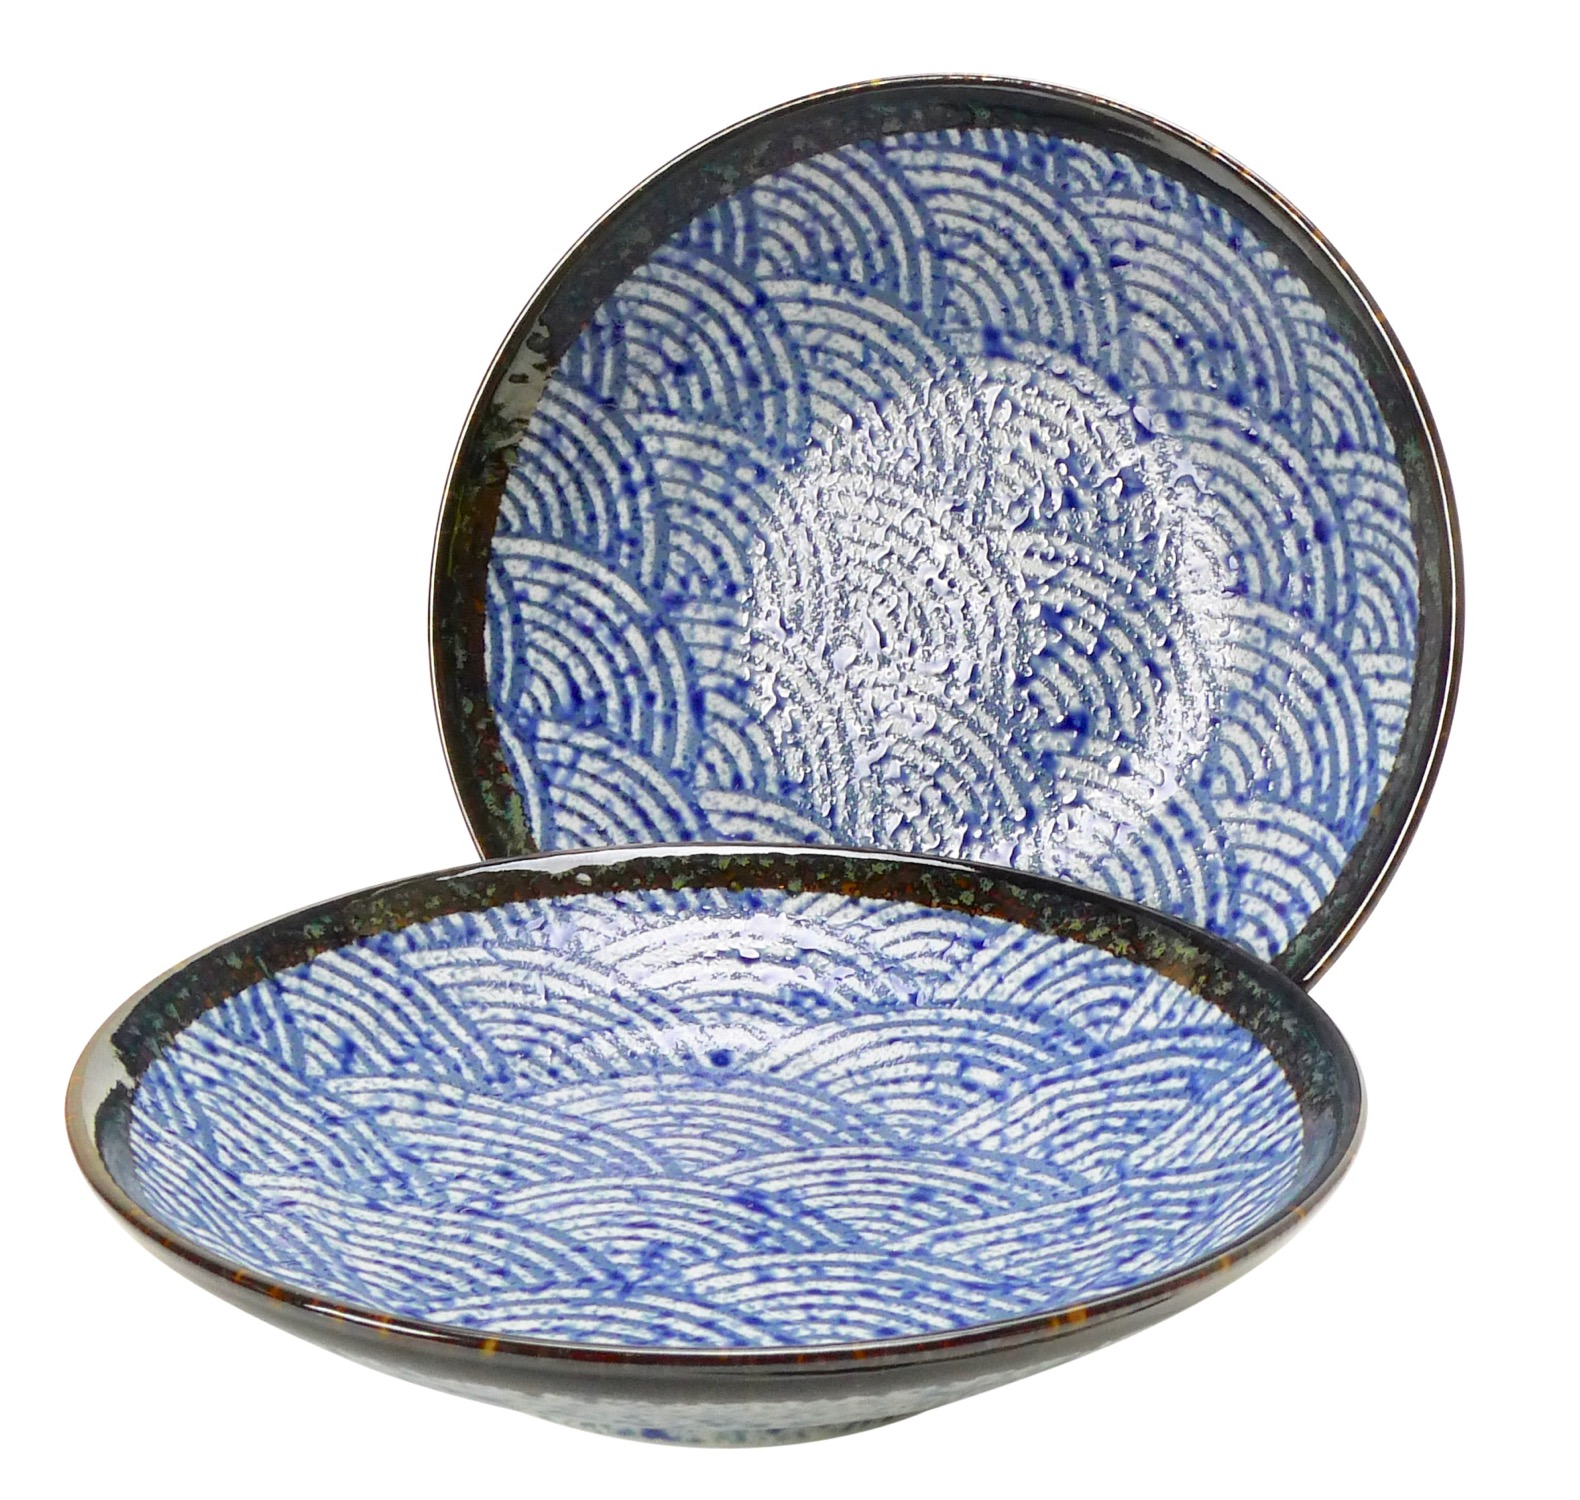 Image of Porcelain Shallow Serving Bowls / Noodle Plates with Blue Seigaiha Wave